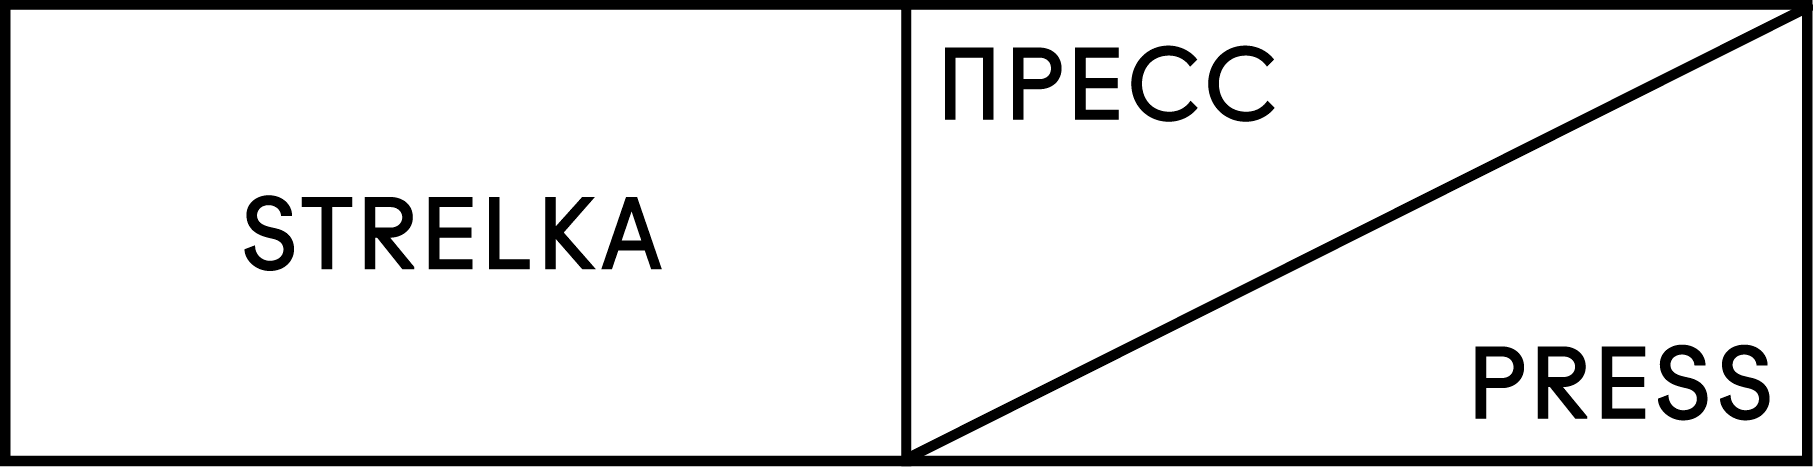 Perfect The Moscow Based Strelka Institute For Media, Architecture And Design Was  Founded In 2009 With The Aim Of Improving The Architecture Of Russian  Cities.